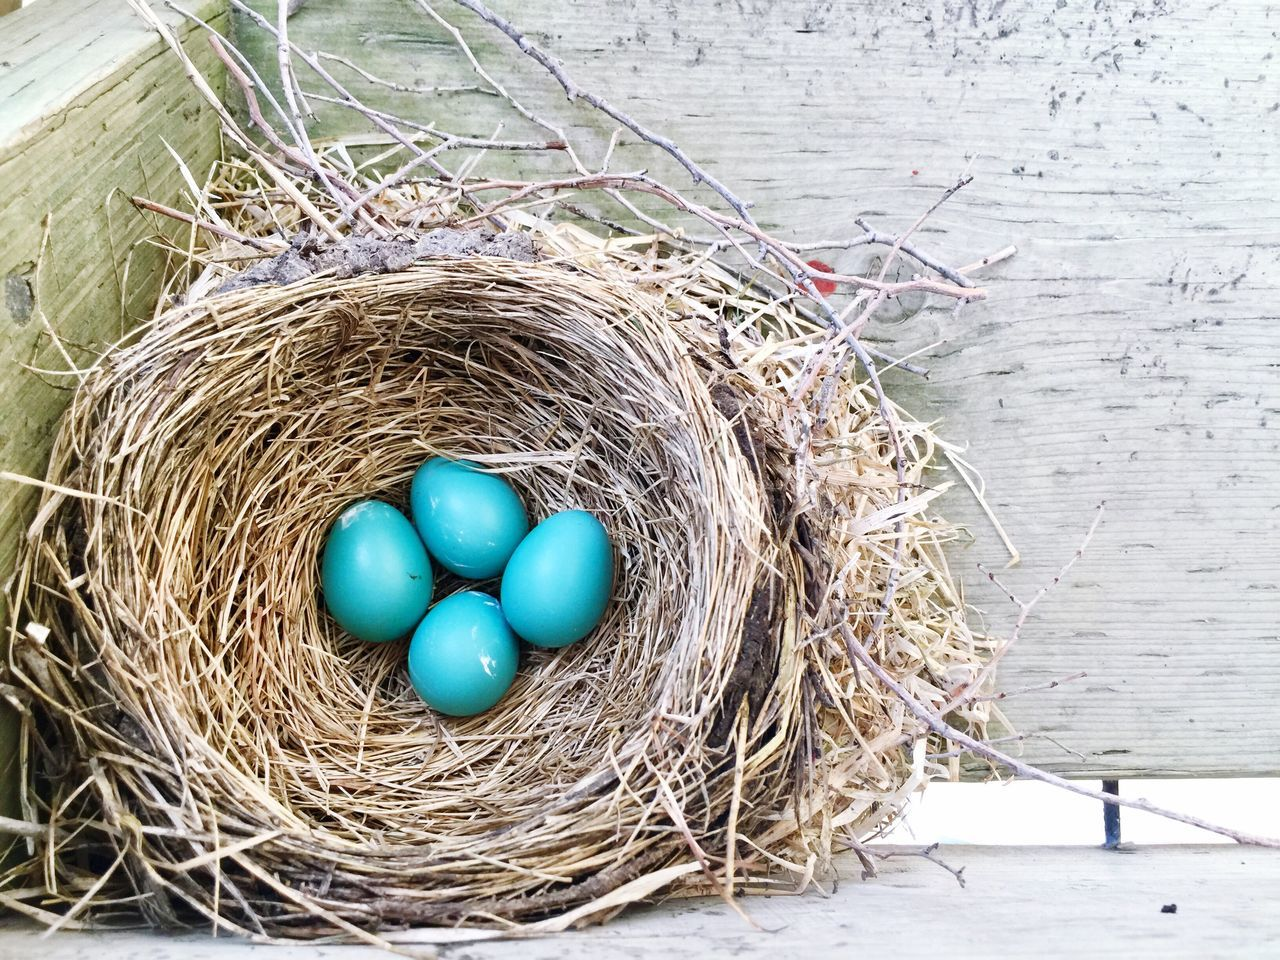 No People Egg Fragility Hay Blue Indoors  Close-up Bird Nest Day Nature Outdoors High Angle View